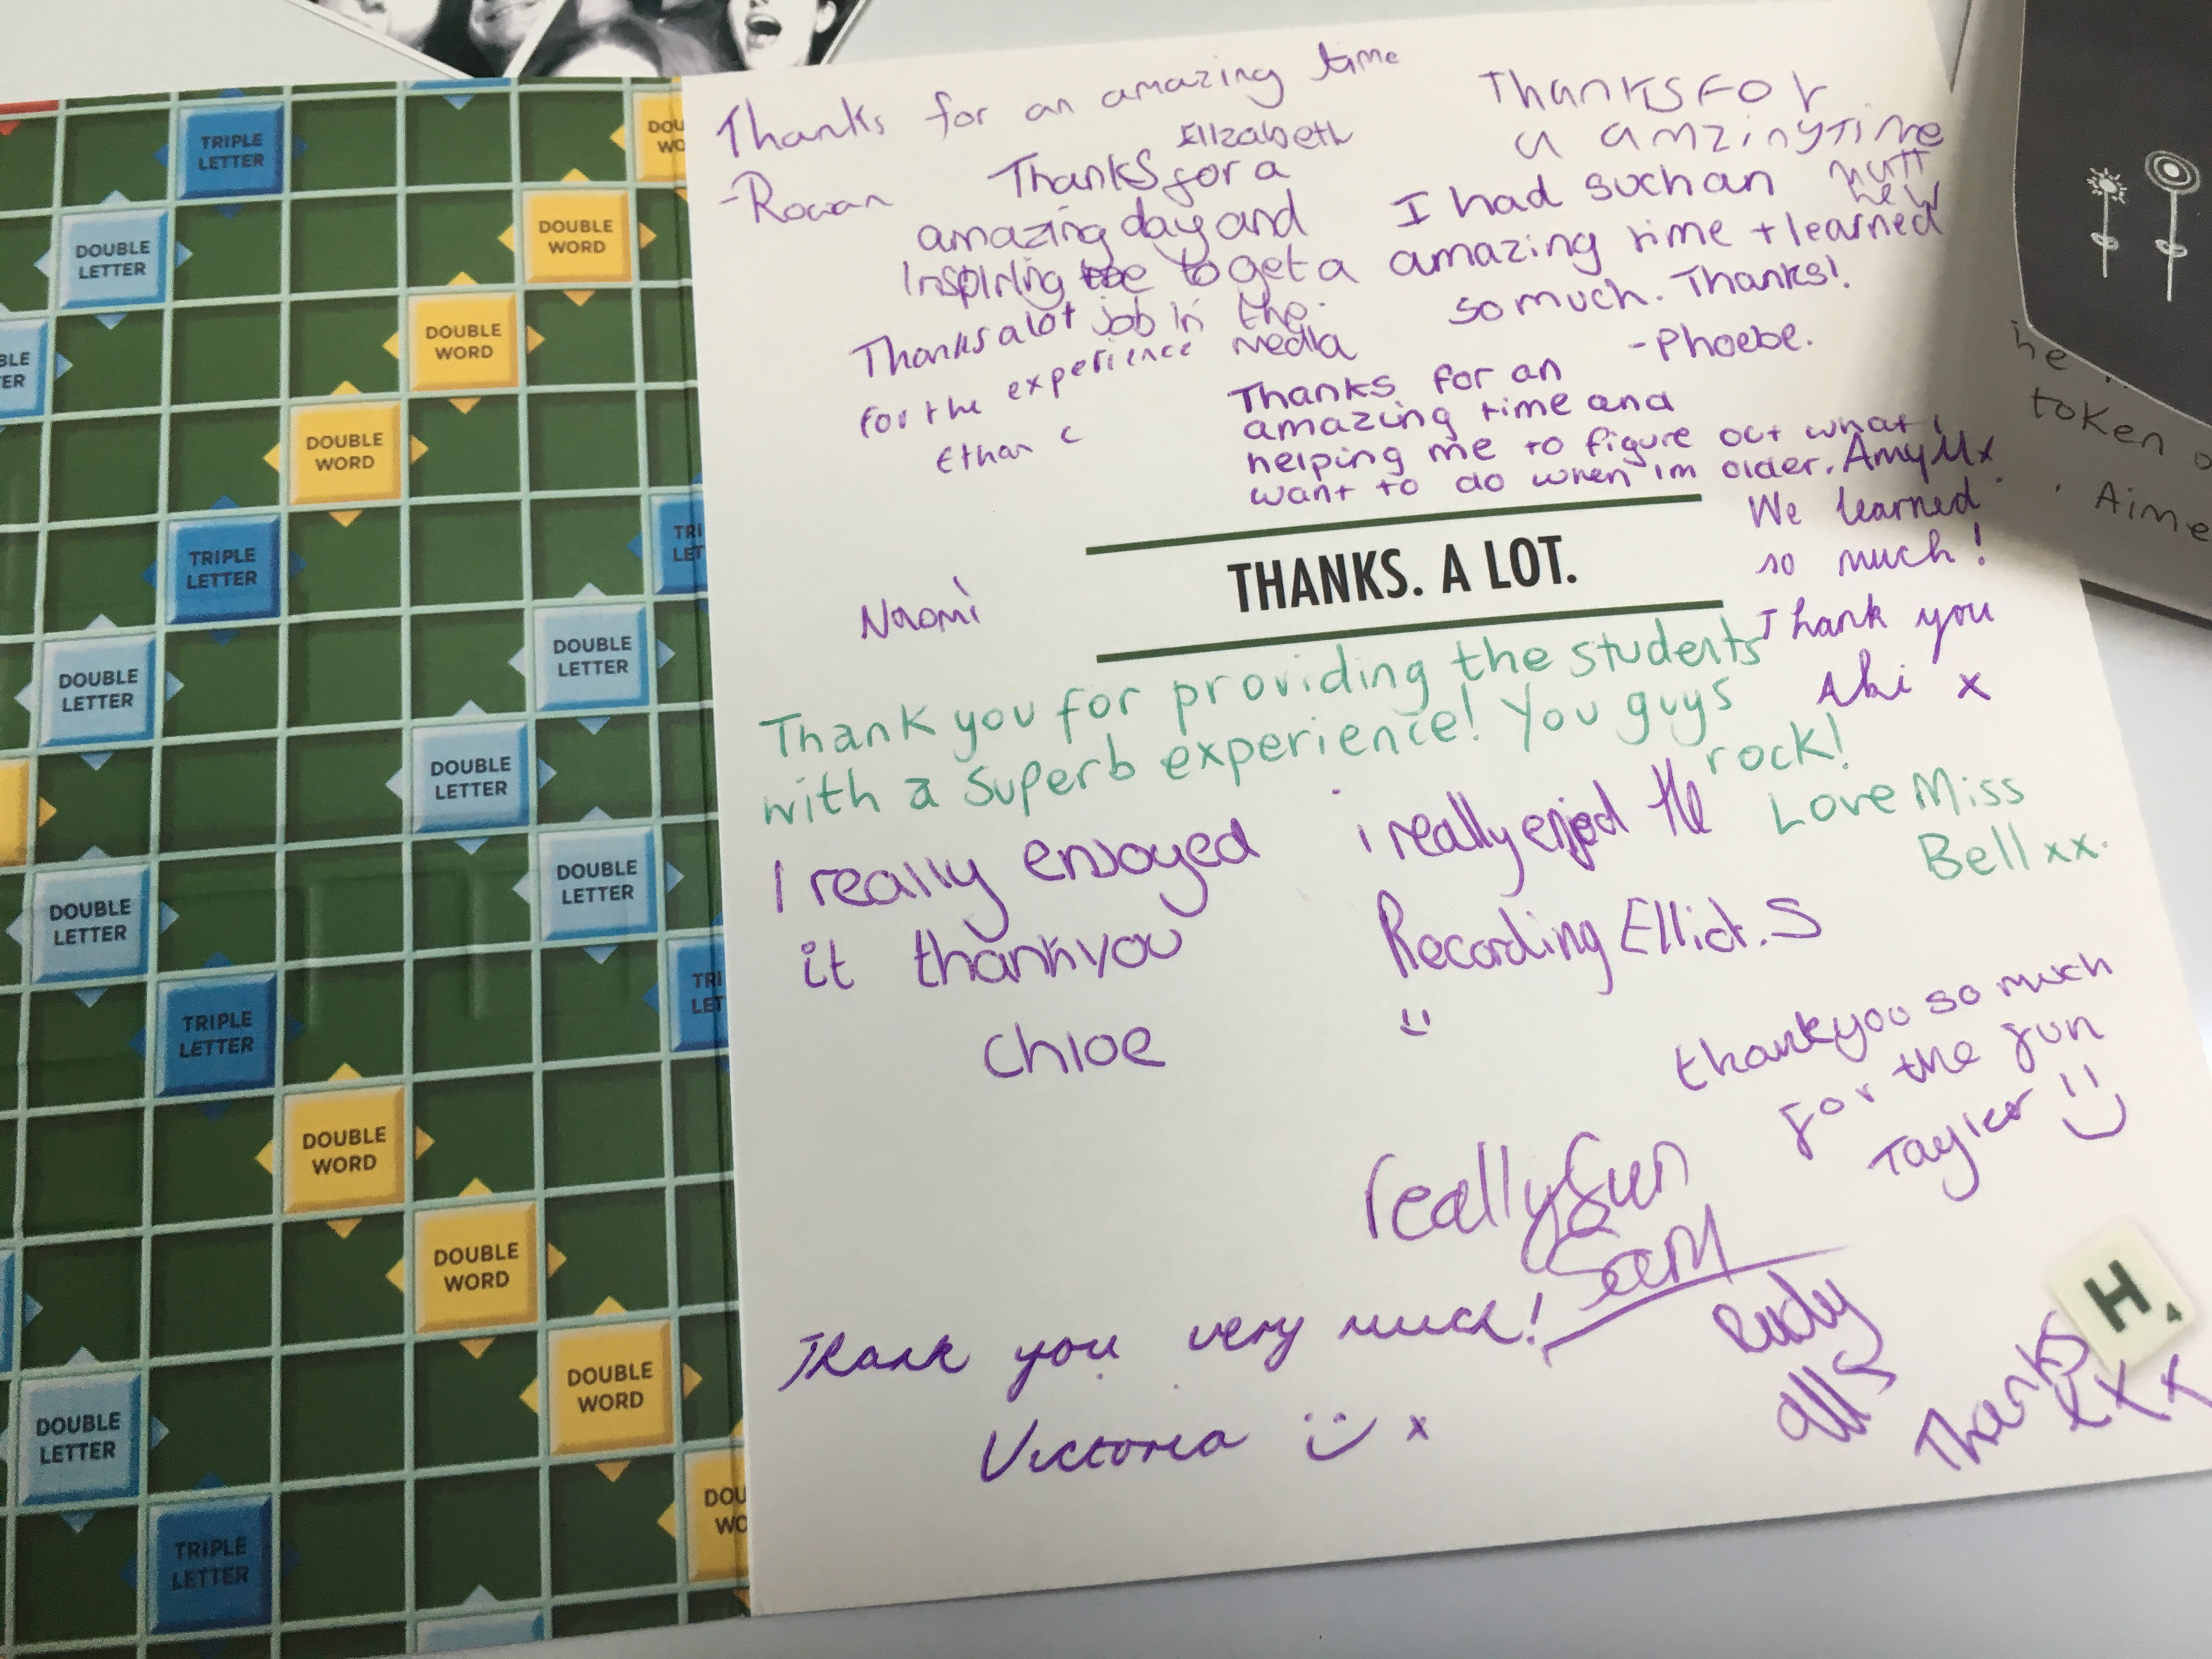 Our thank you card from the Toot Hill media studies class.